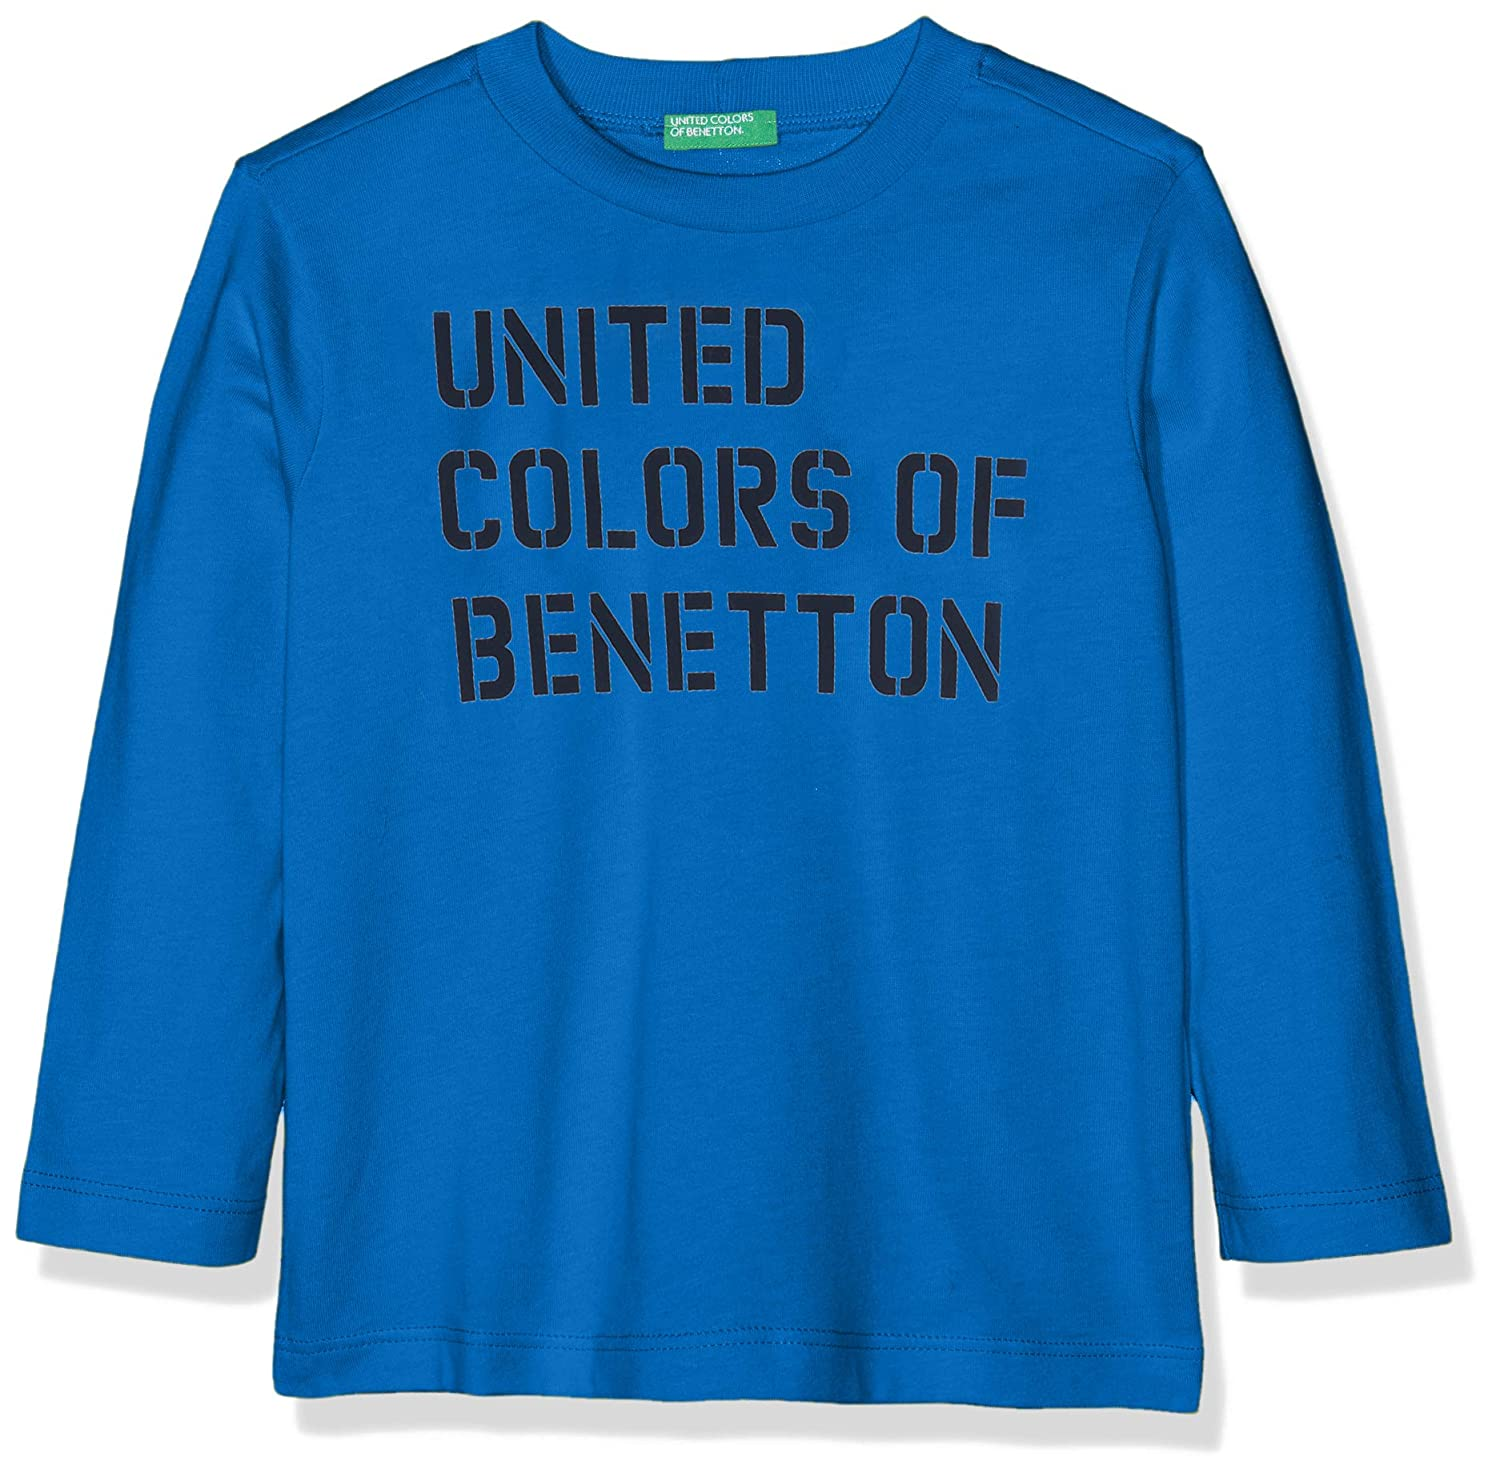 United Colors of Benetton T-Shirt L/s Camiseta de Tirantes, Azul ...